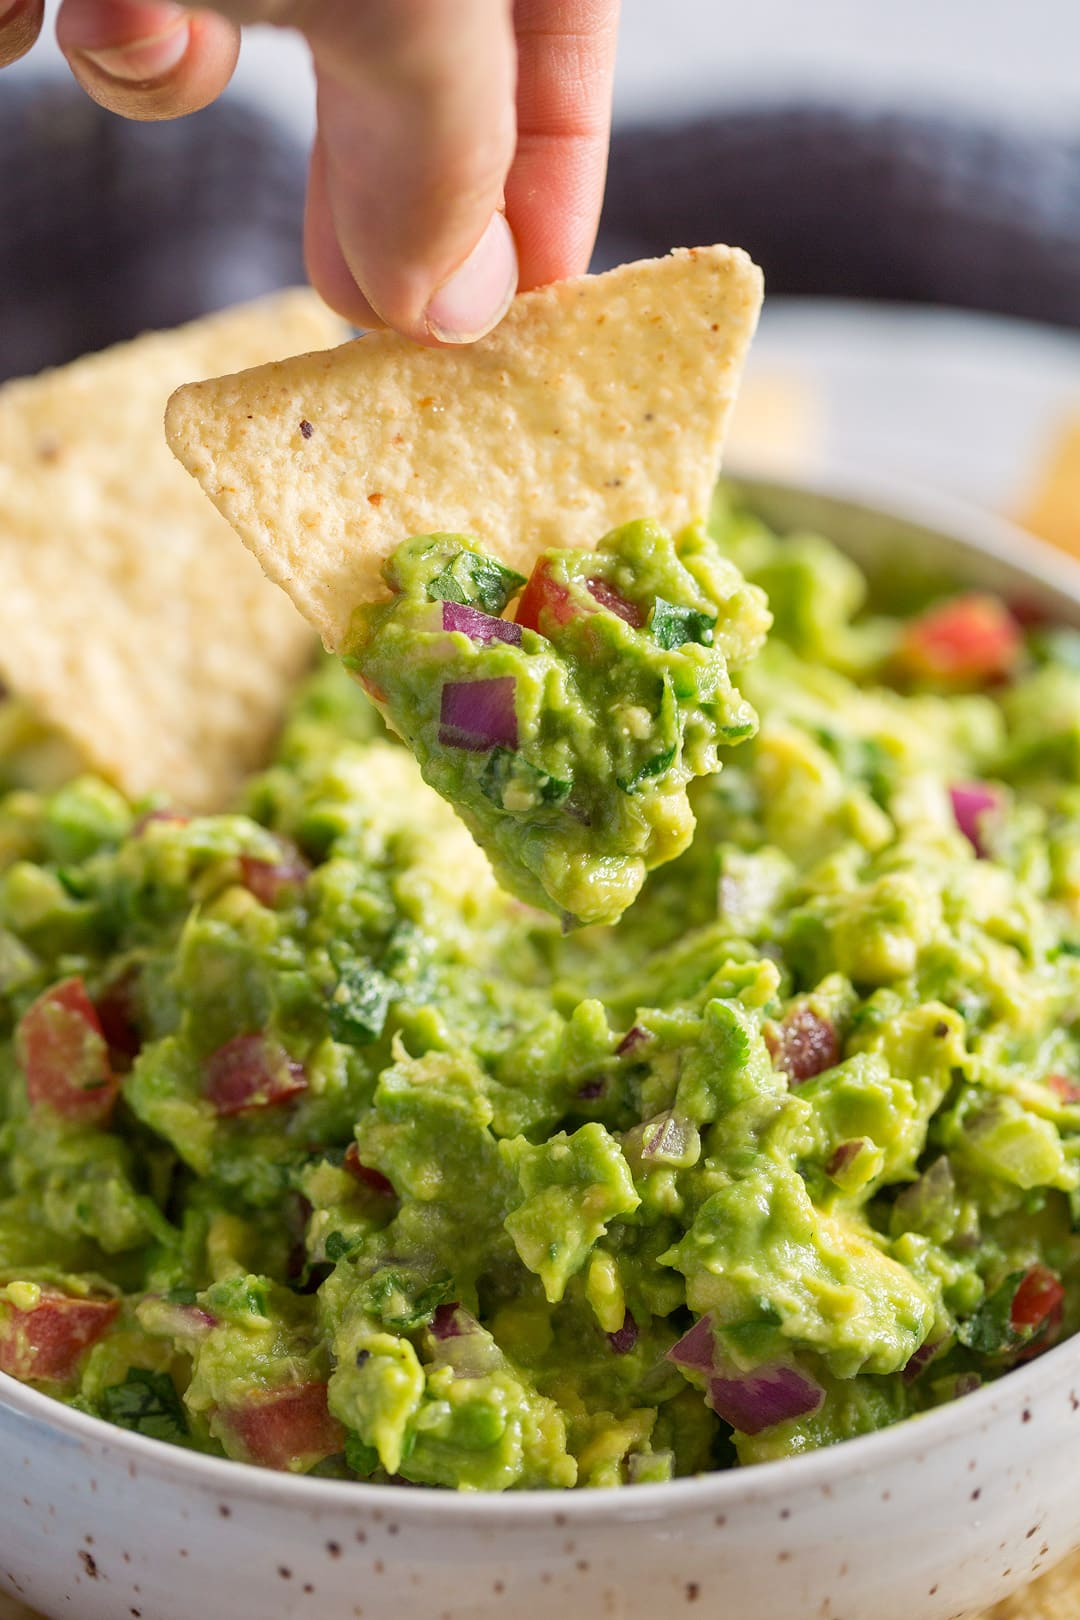 dipping a tortilla chip into fresh guacamole dip